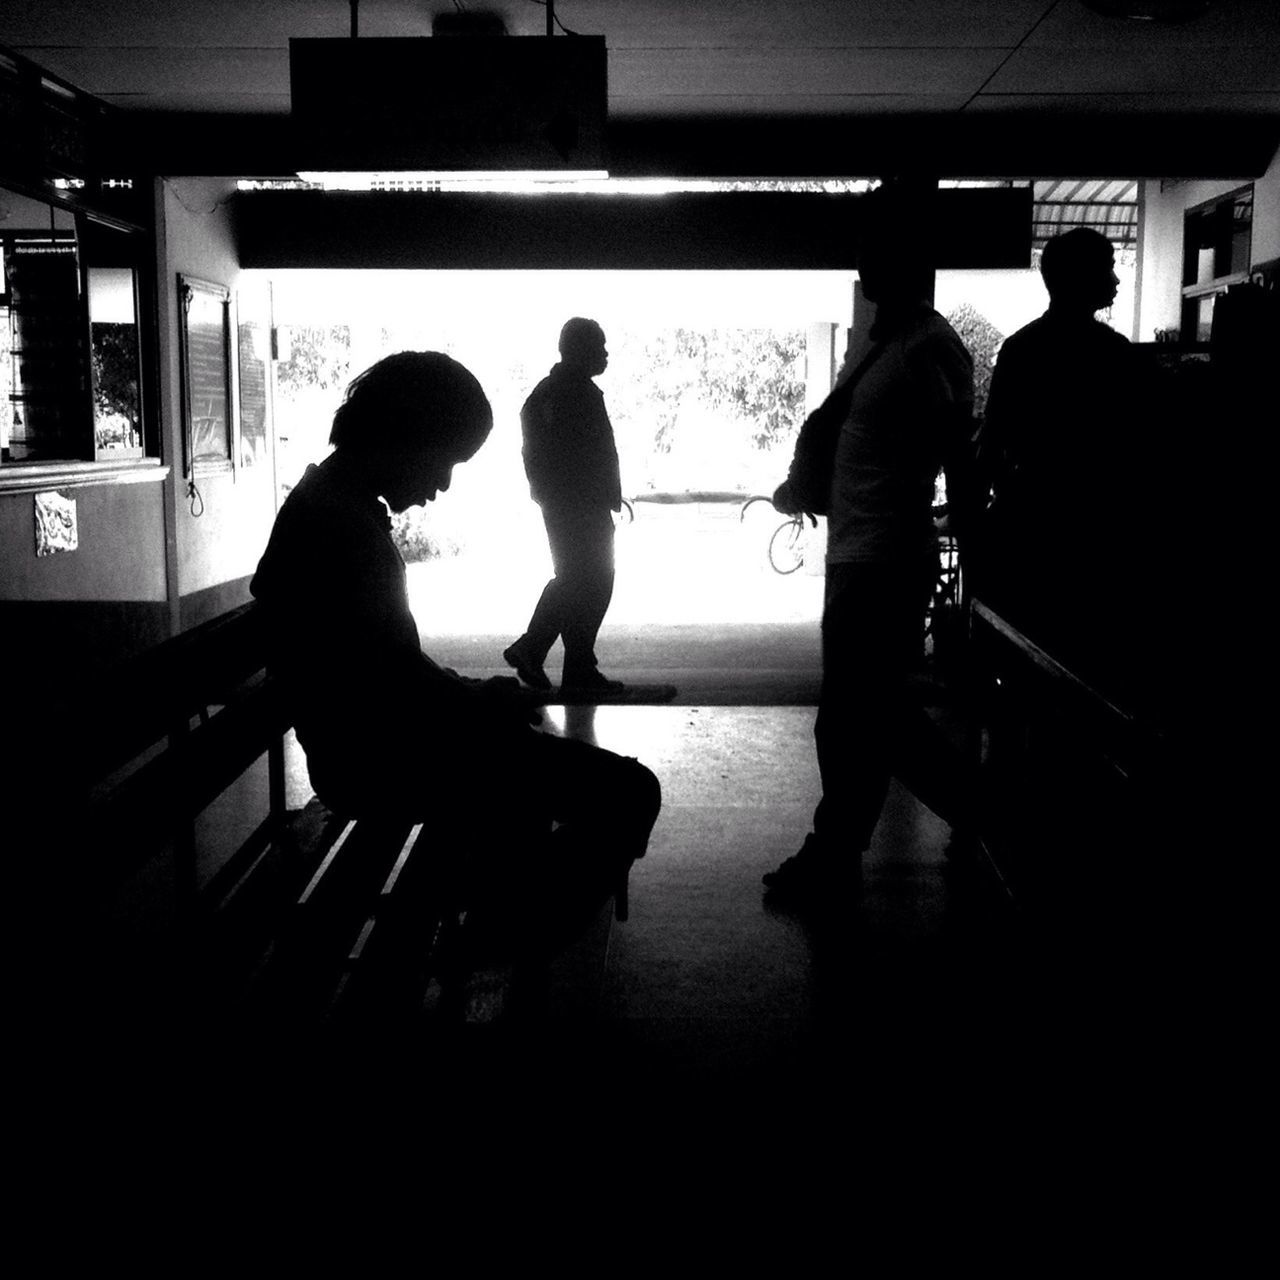 real people, men, silhouette, indoors, walking, standing, women, waiting, full length, public transportation, transportation, lifestyles, togetherness, day, adult, people